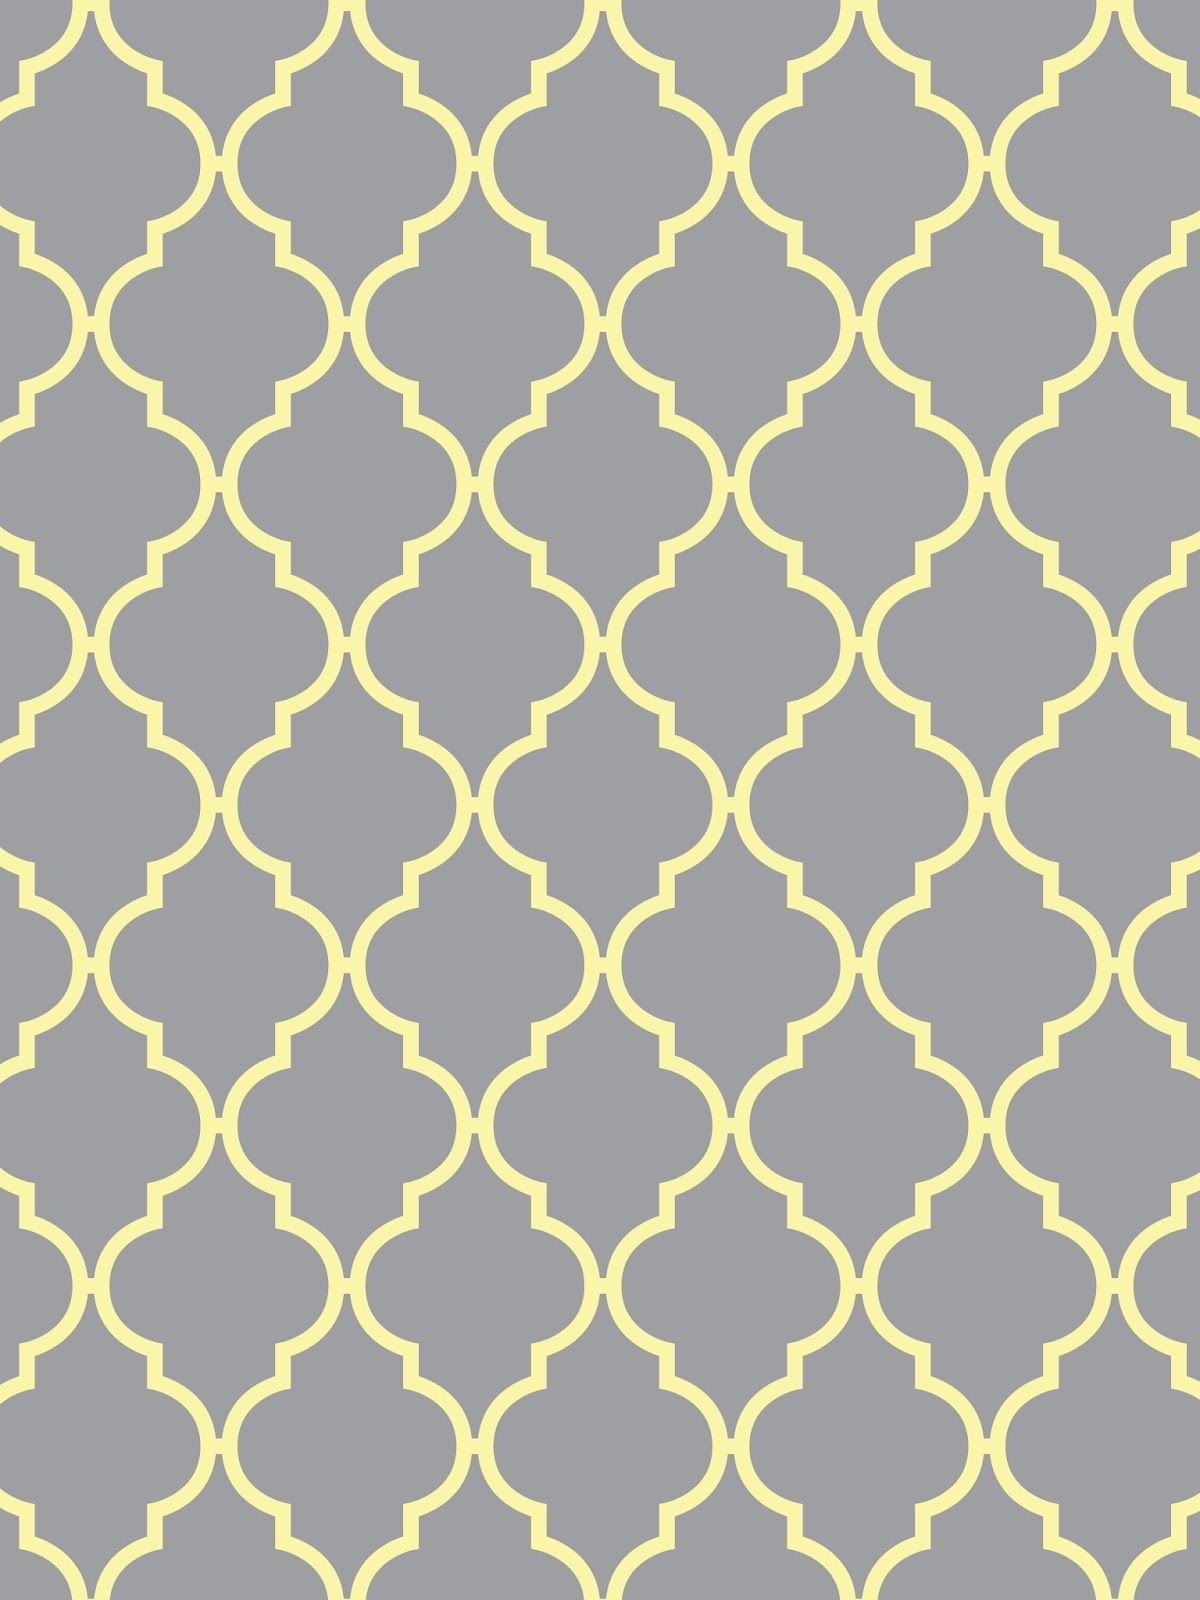 Create Printables Backgrounds Wallpapers Quatrefoil Light Gray With Yellow Aqua Pink White